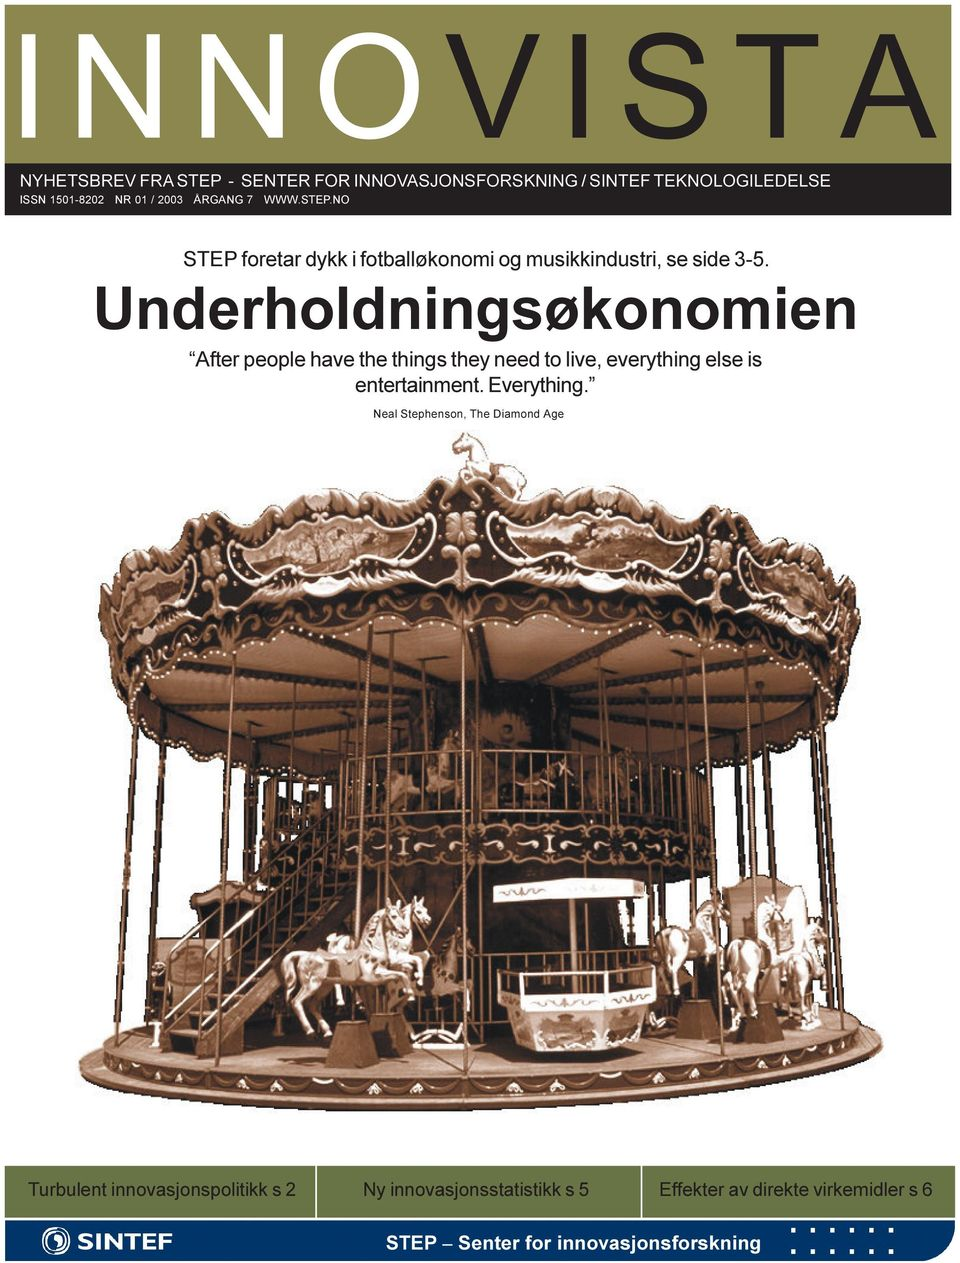 Underholdningsøkonomien After people have the things they need to live, everything else is entertainment. Everything.